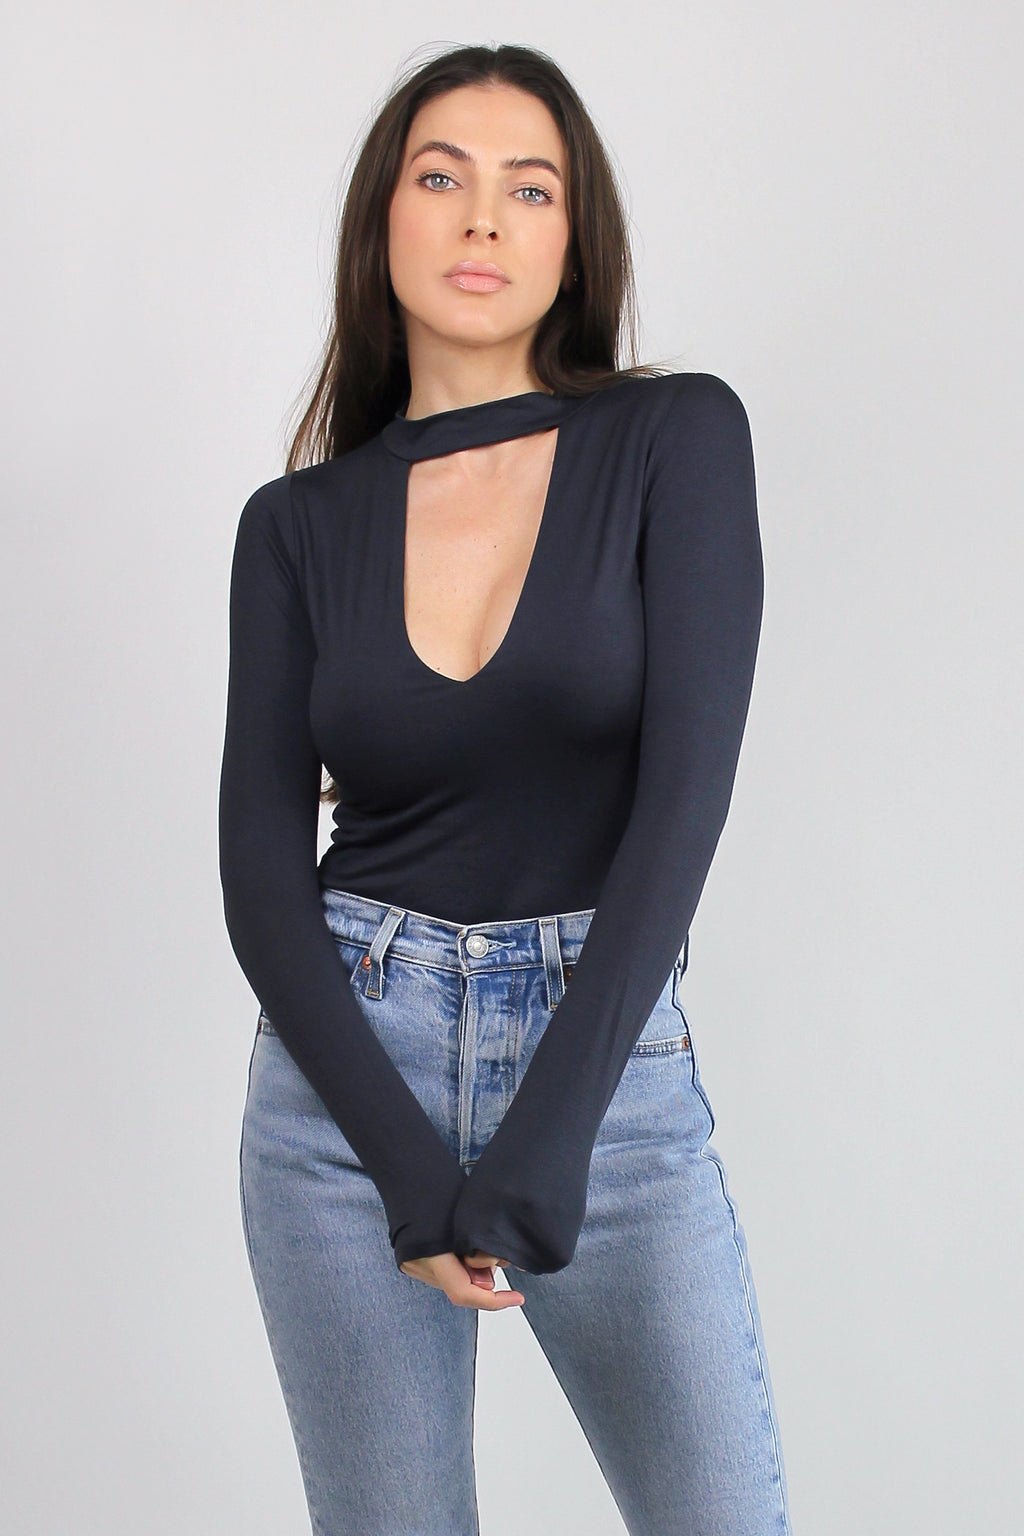 Fitted-tee shirt with cut out neckline, in Washed Black.